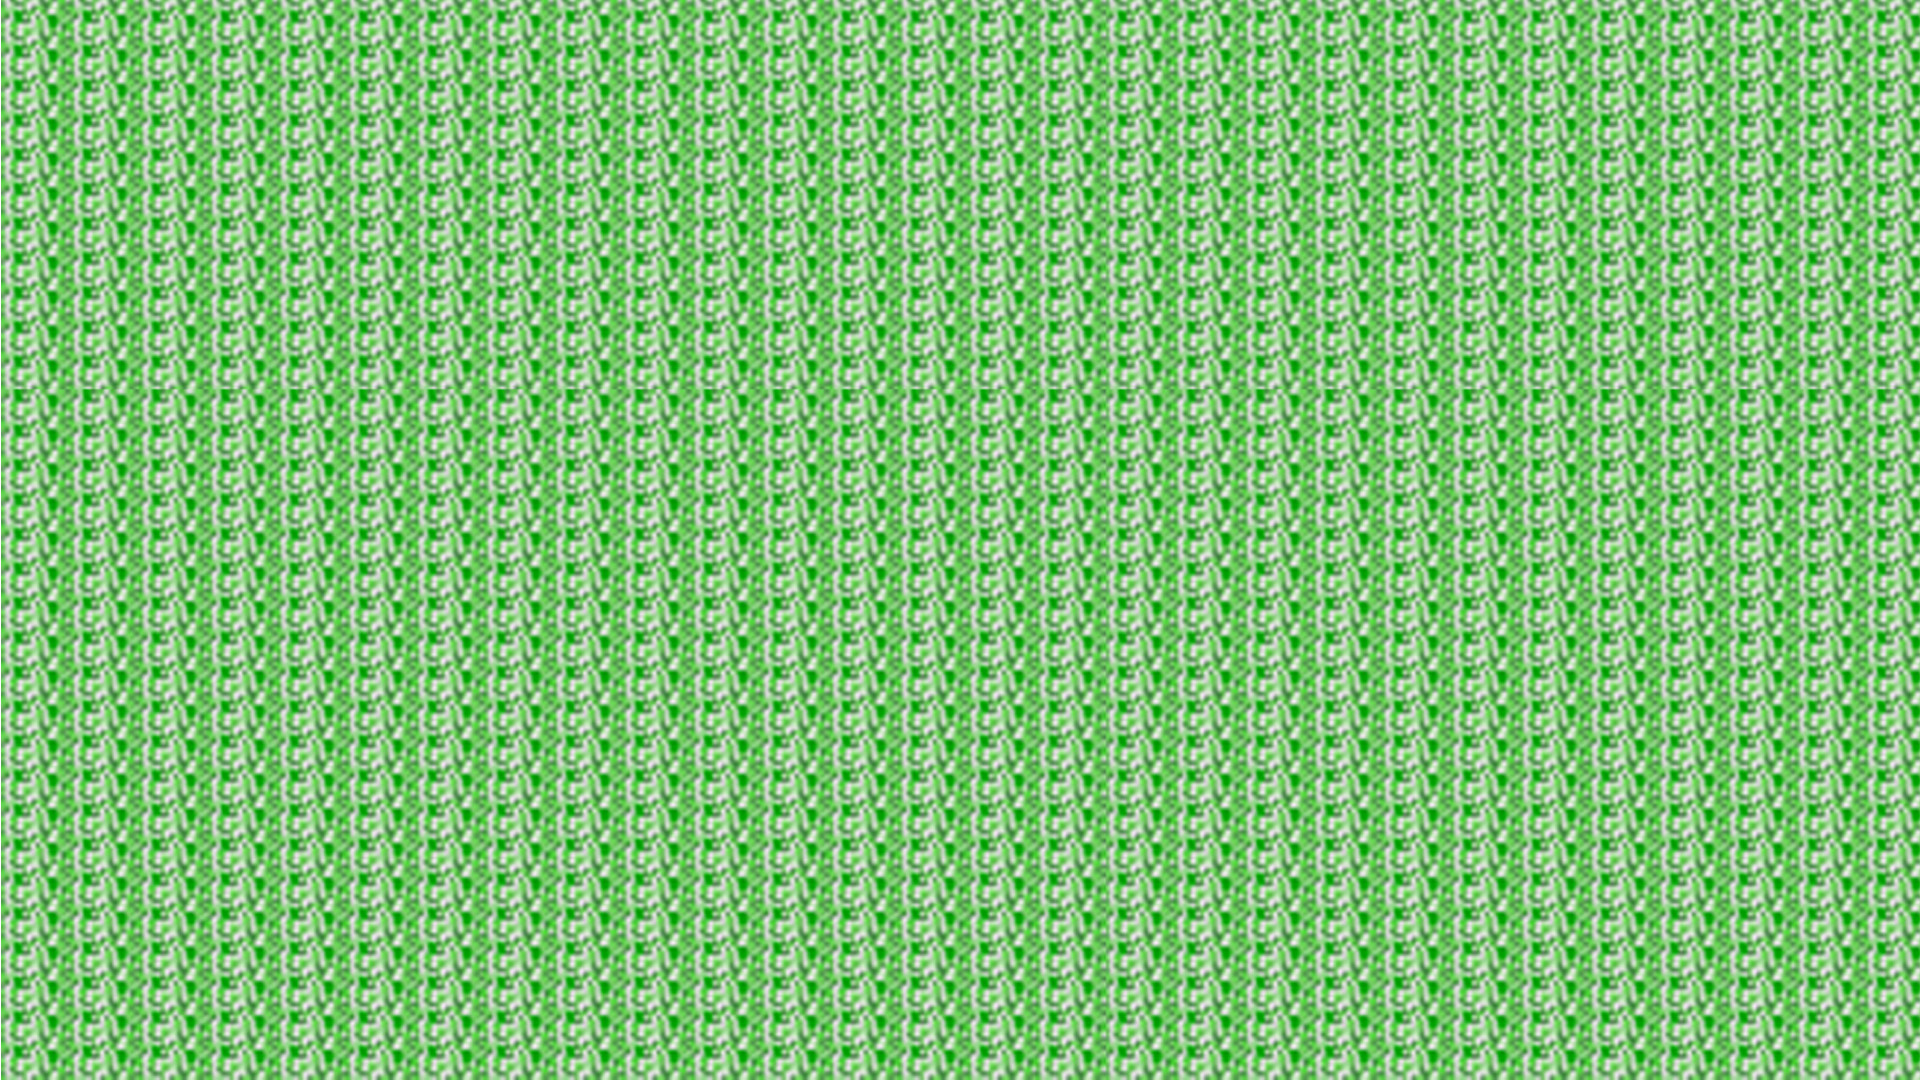 1920x1200 1920x1200 Creeper Face Wallpapers Wallpaper Cave · Download · Minecraft .